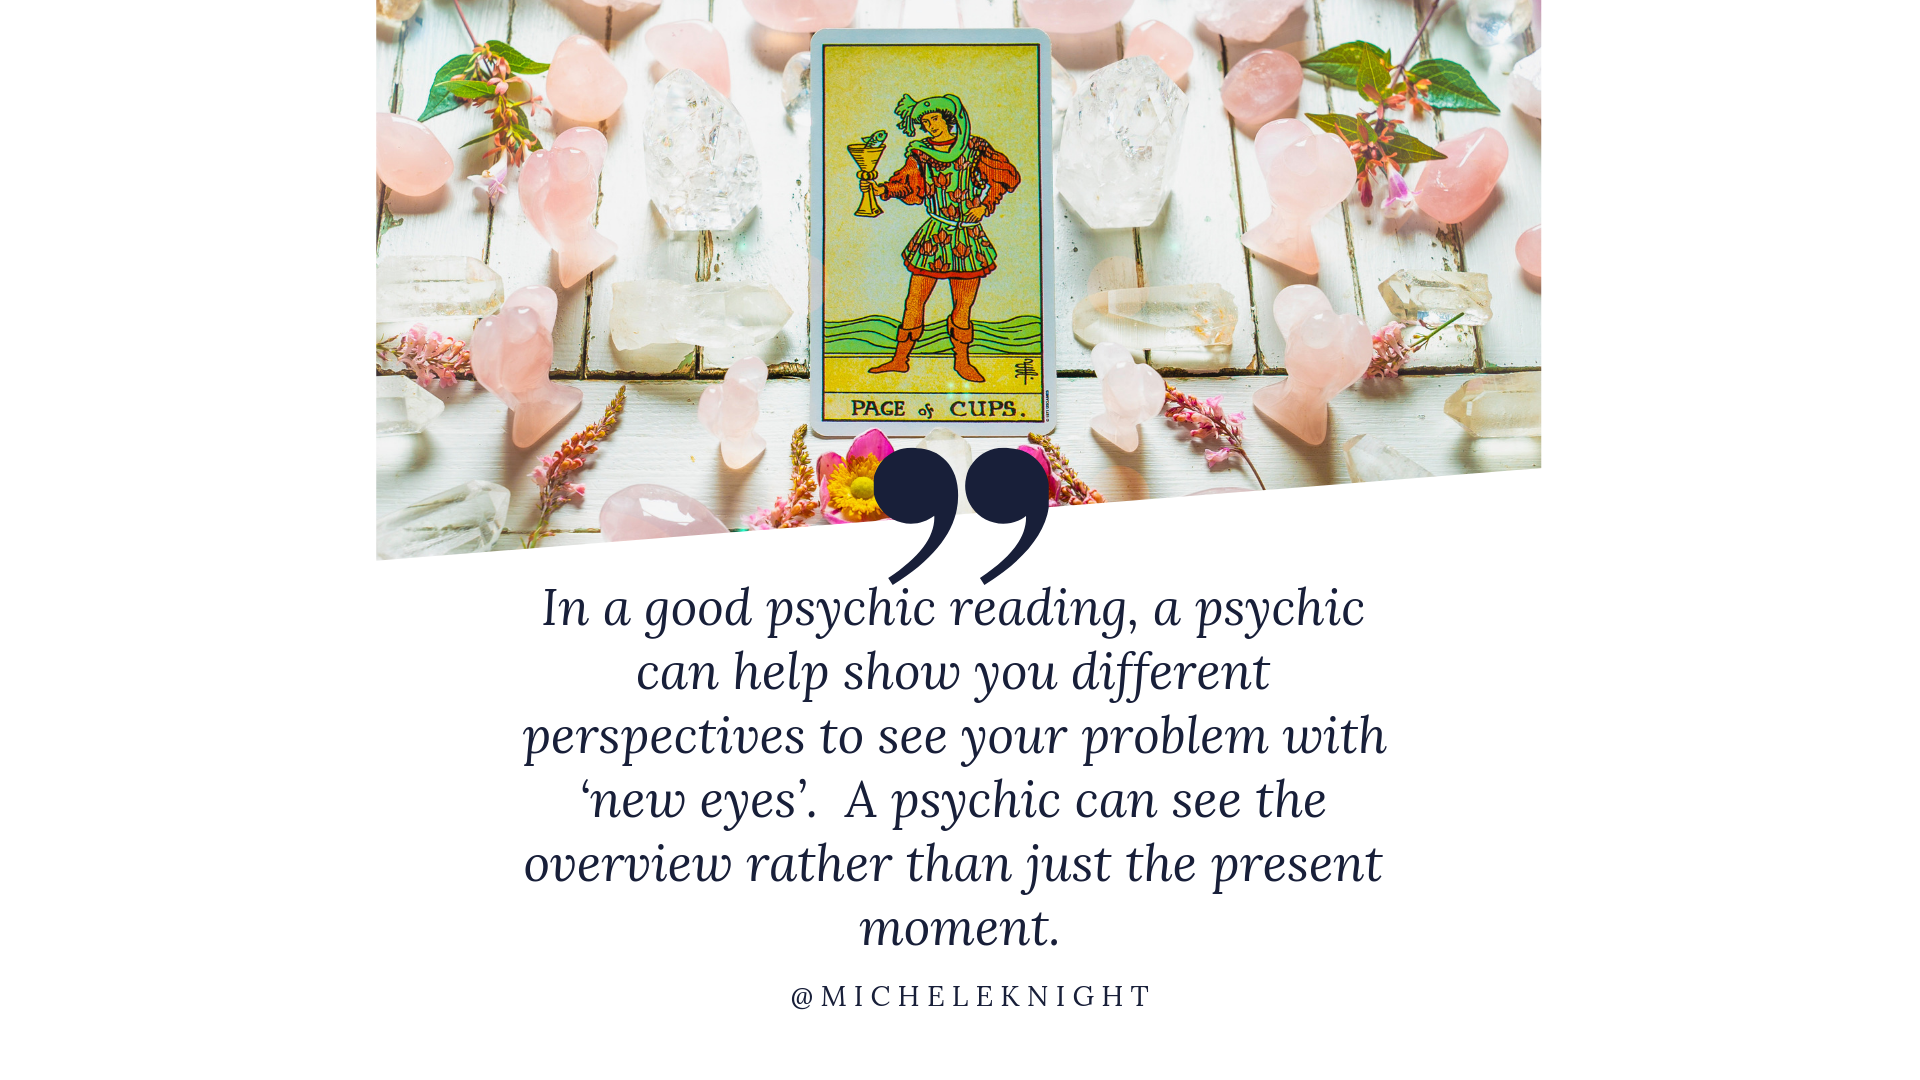 Think Like A Psychic - How To See Your Problems Differently